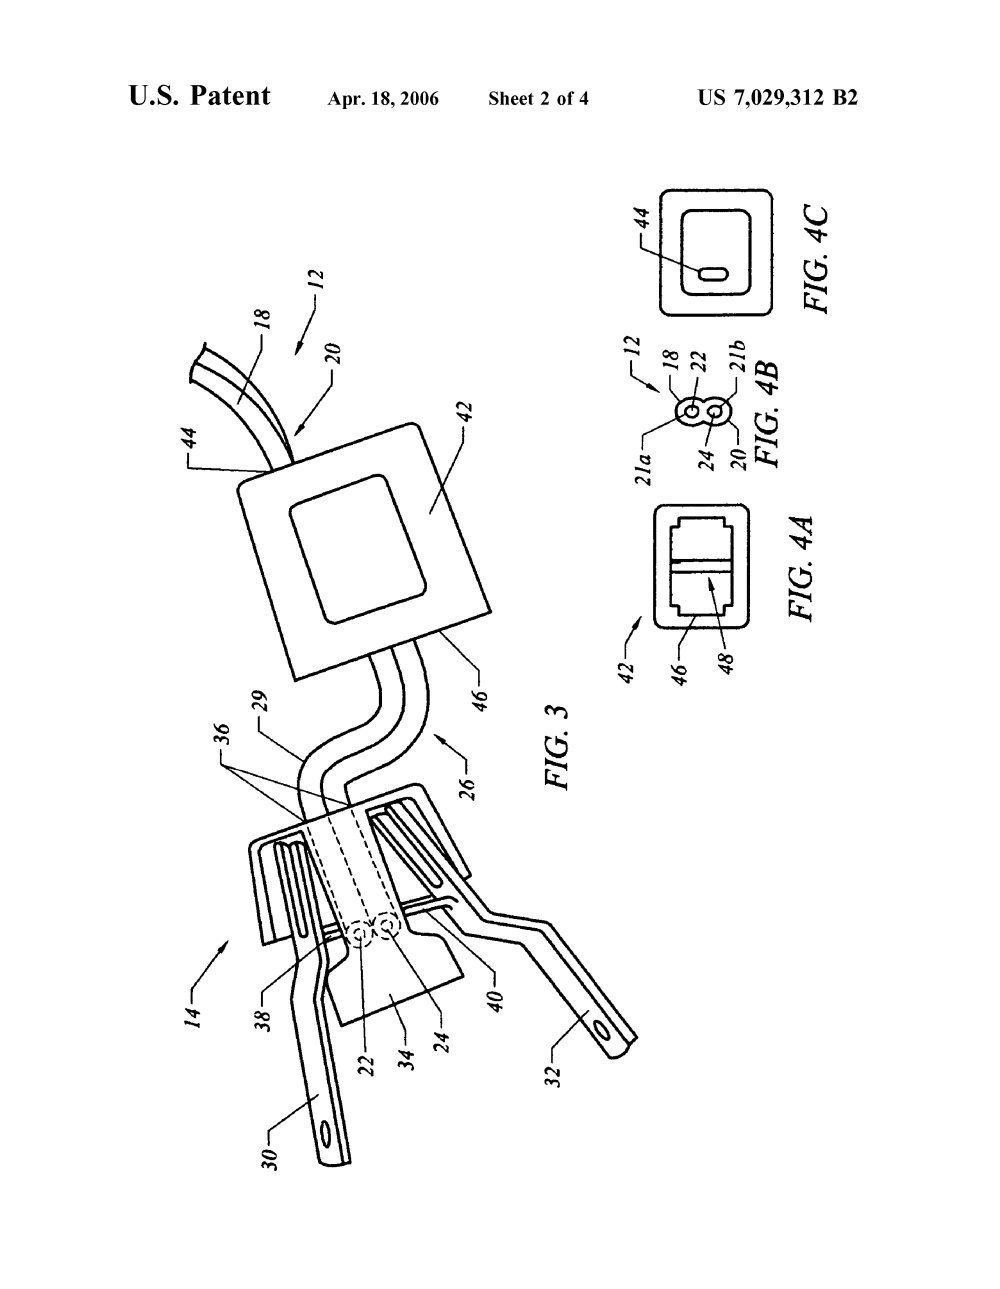 medium resolution of us 7029312 b2 double male two prong electrical connector apparatus wiring a 4 prong plug to a 3 prong plug along with patent us7029312